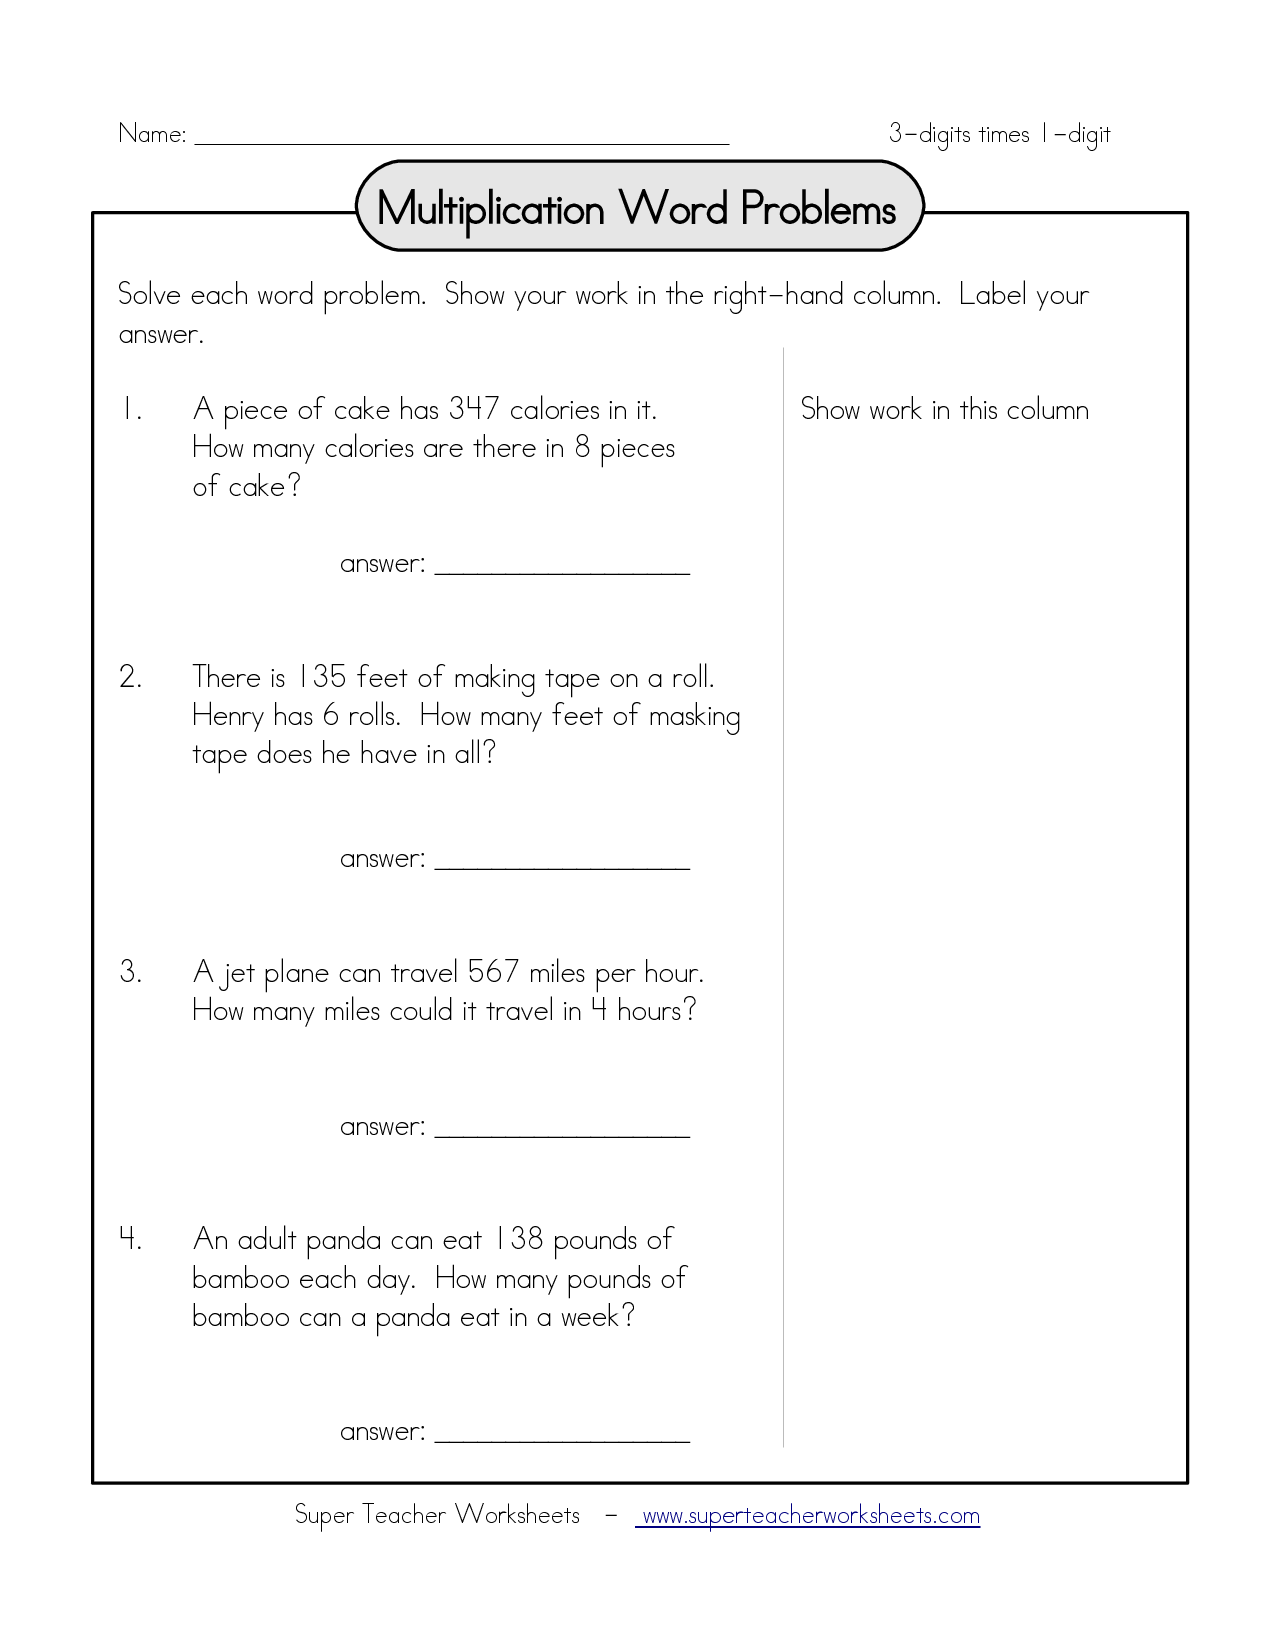 Multiplication Word Problems Name 3 Digits | Word Problems